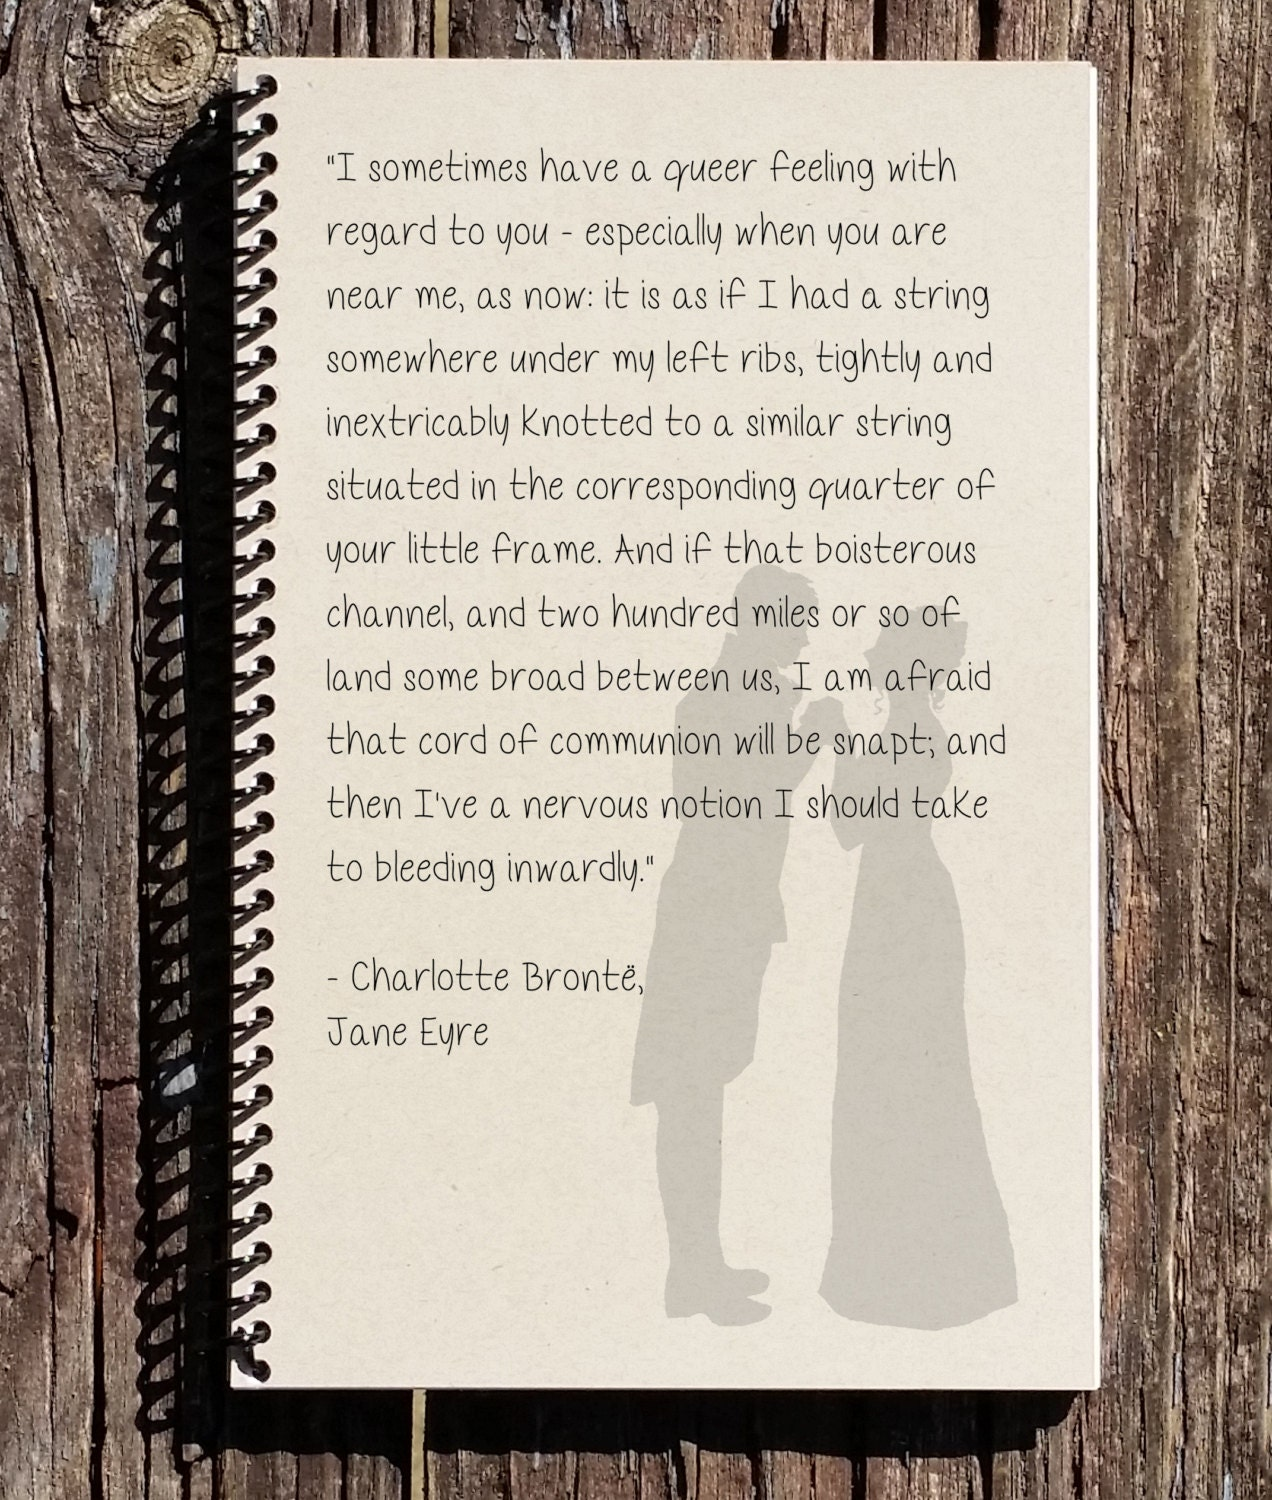 Quotes Jane Eyre Jane Eyre Journal Jane Eyre Mr Rochester String Quote Mr